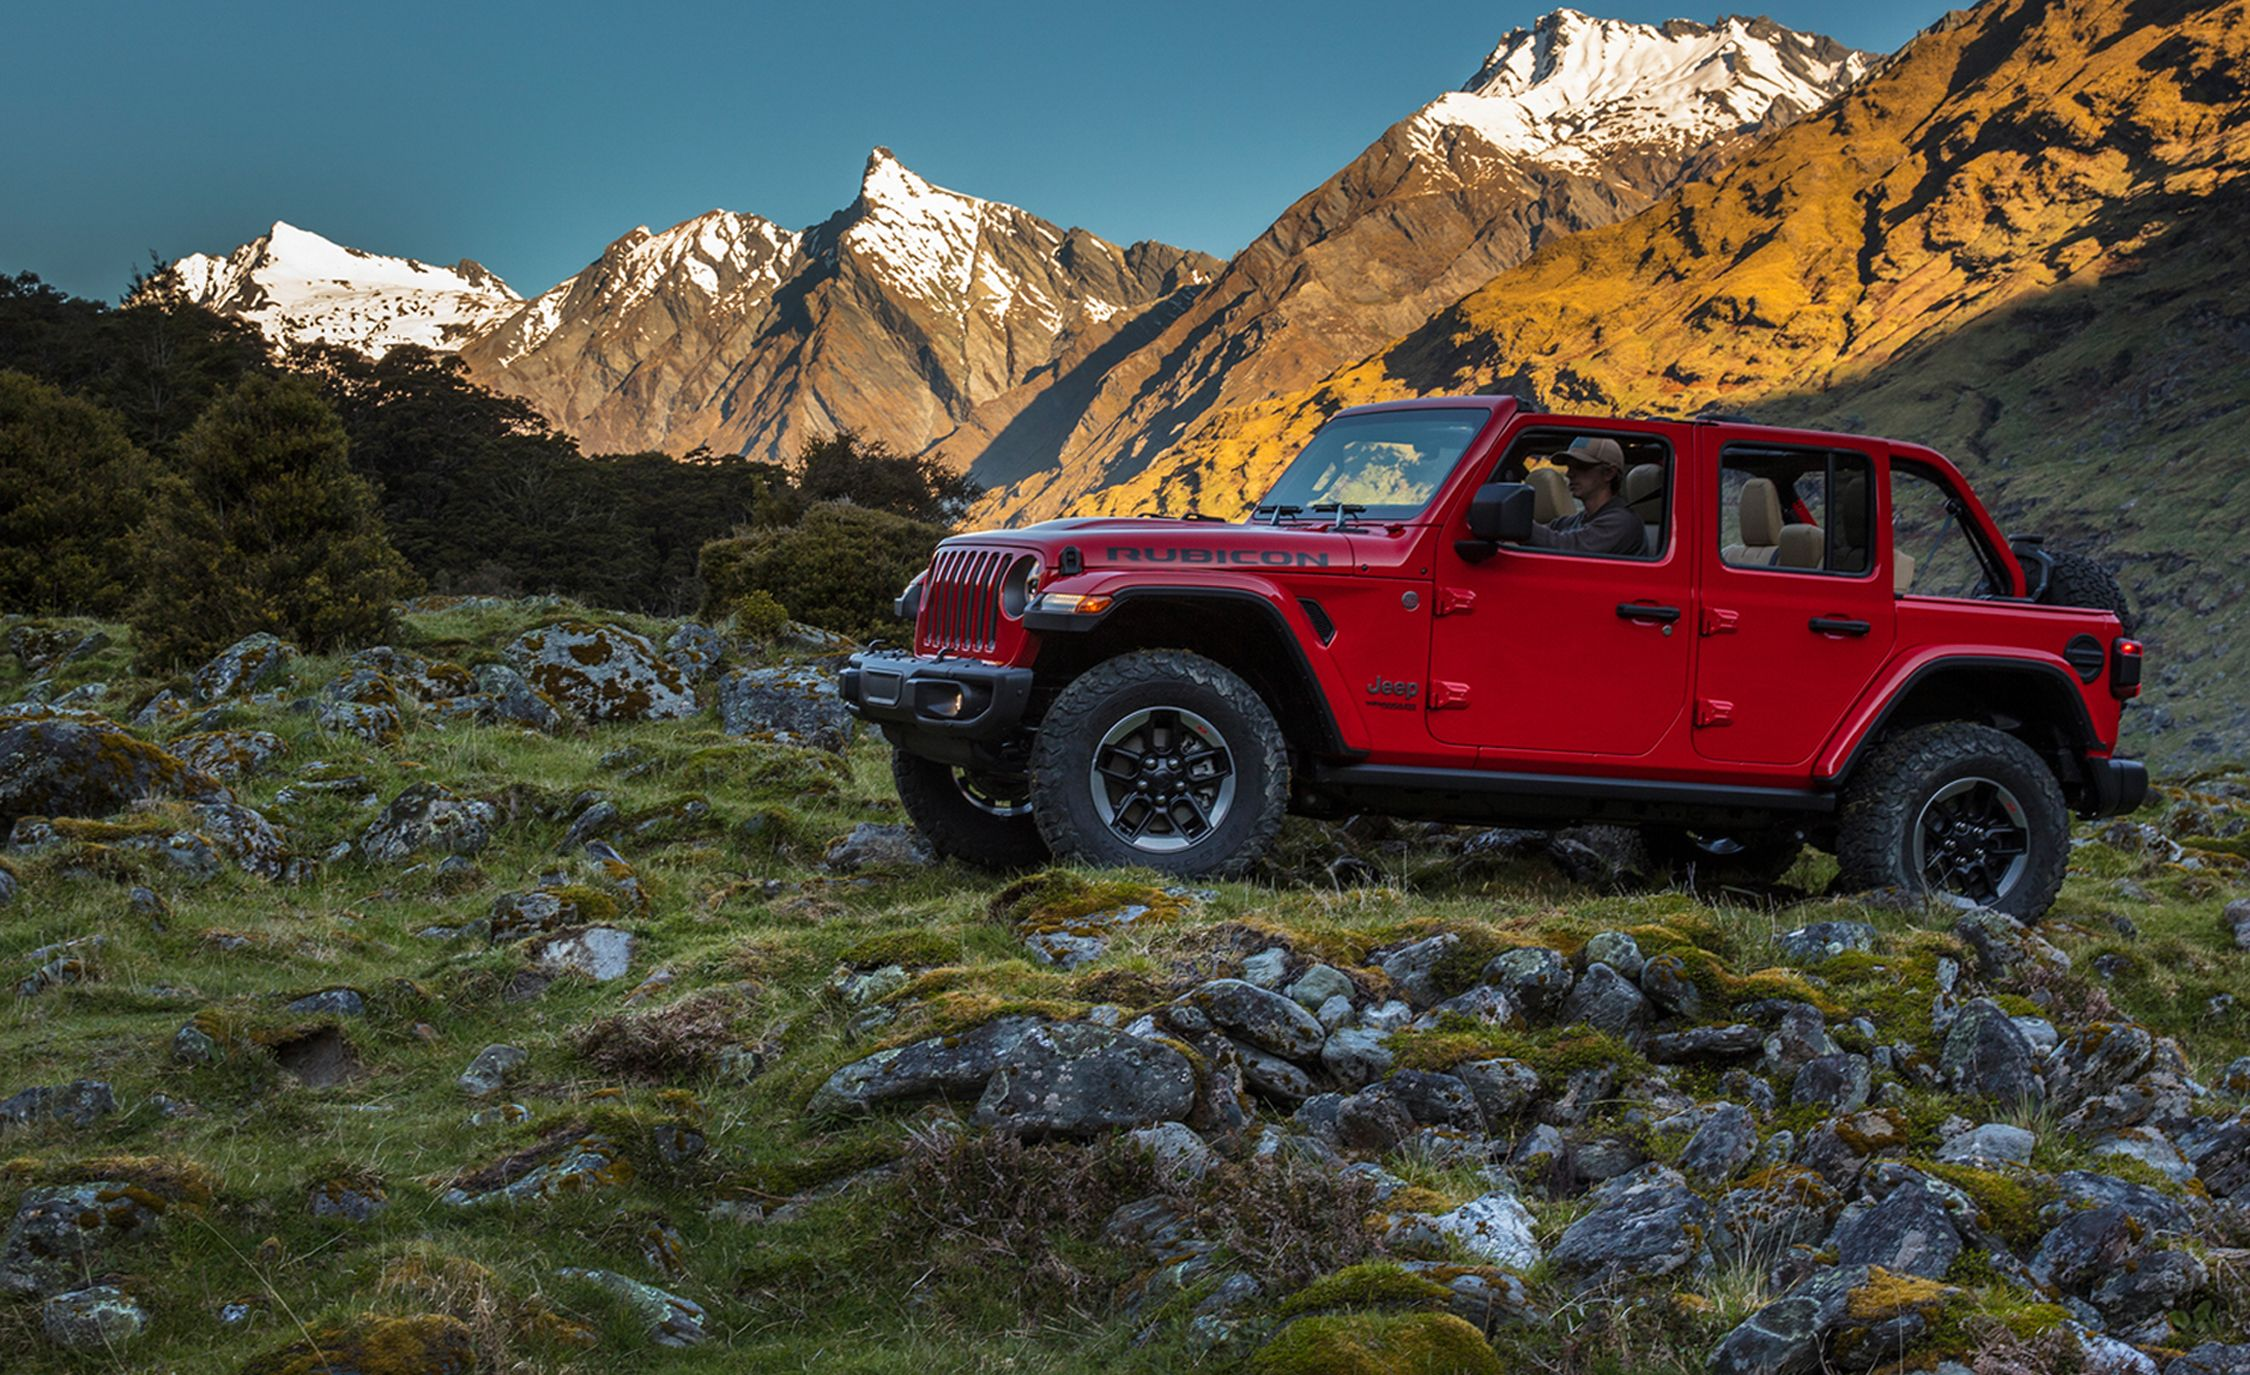 2018 Jeep Wrangler: An All-New Version of an Icon!